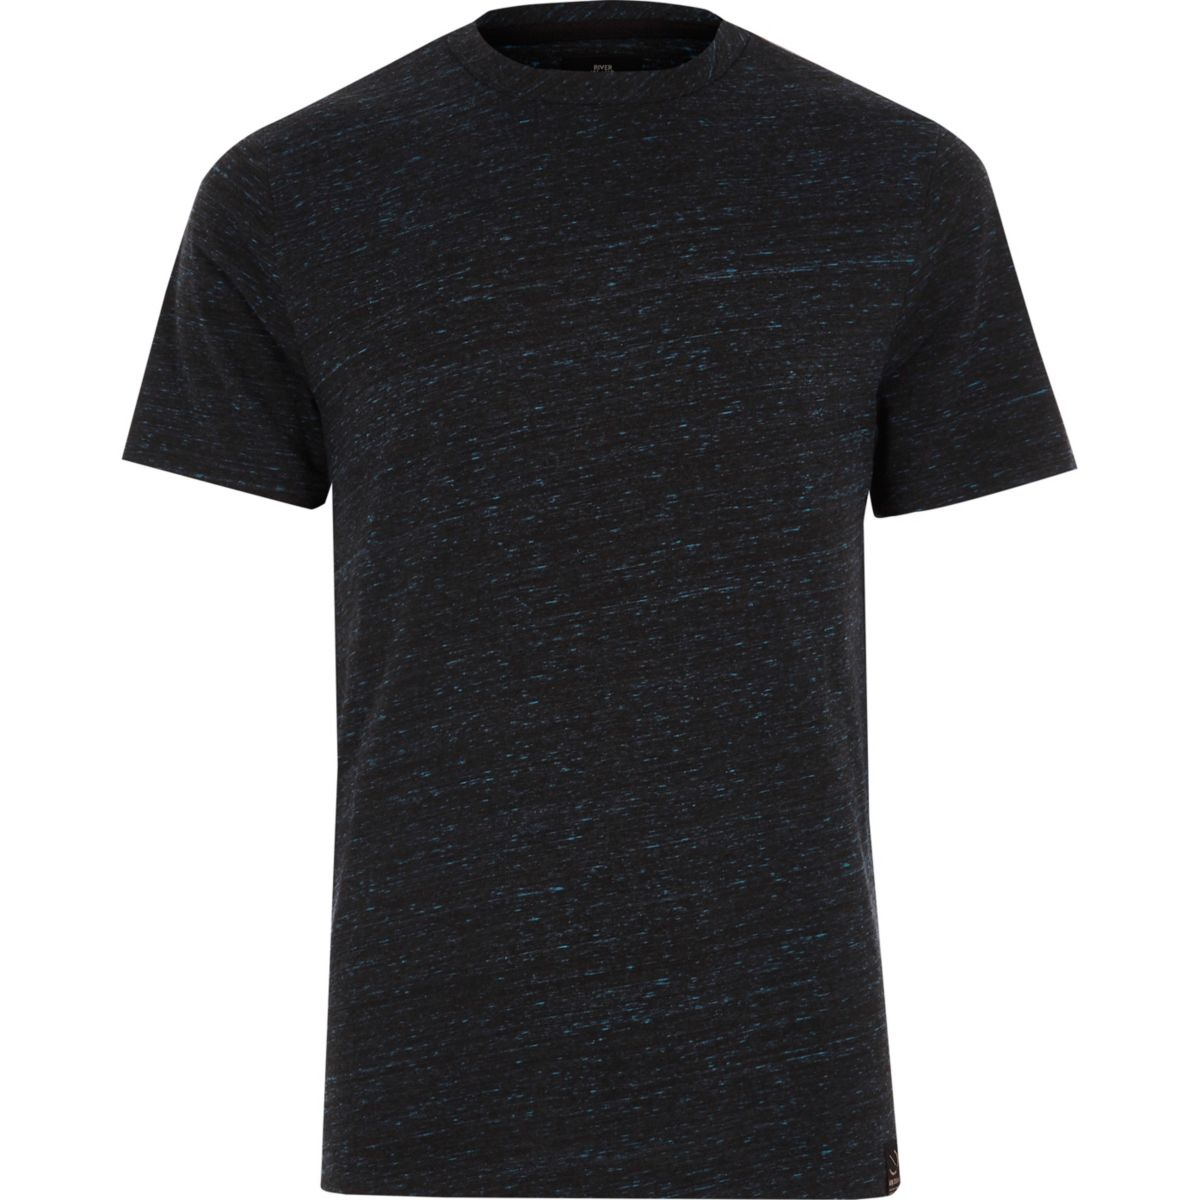 Navy textured slim fit crew neck T-shirt